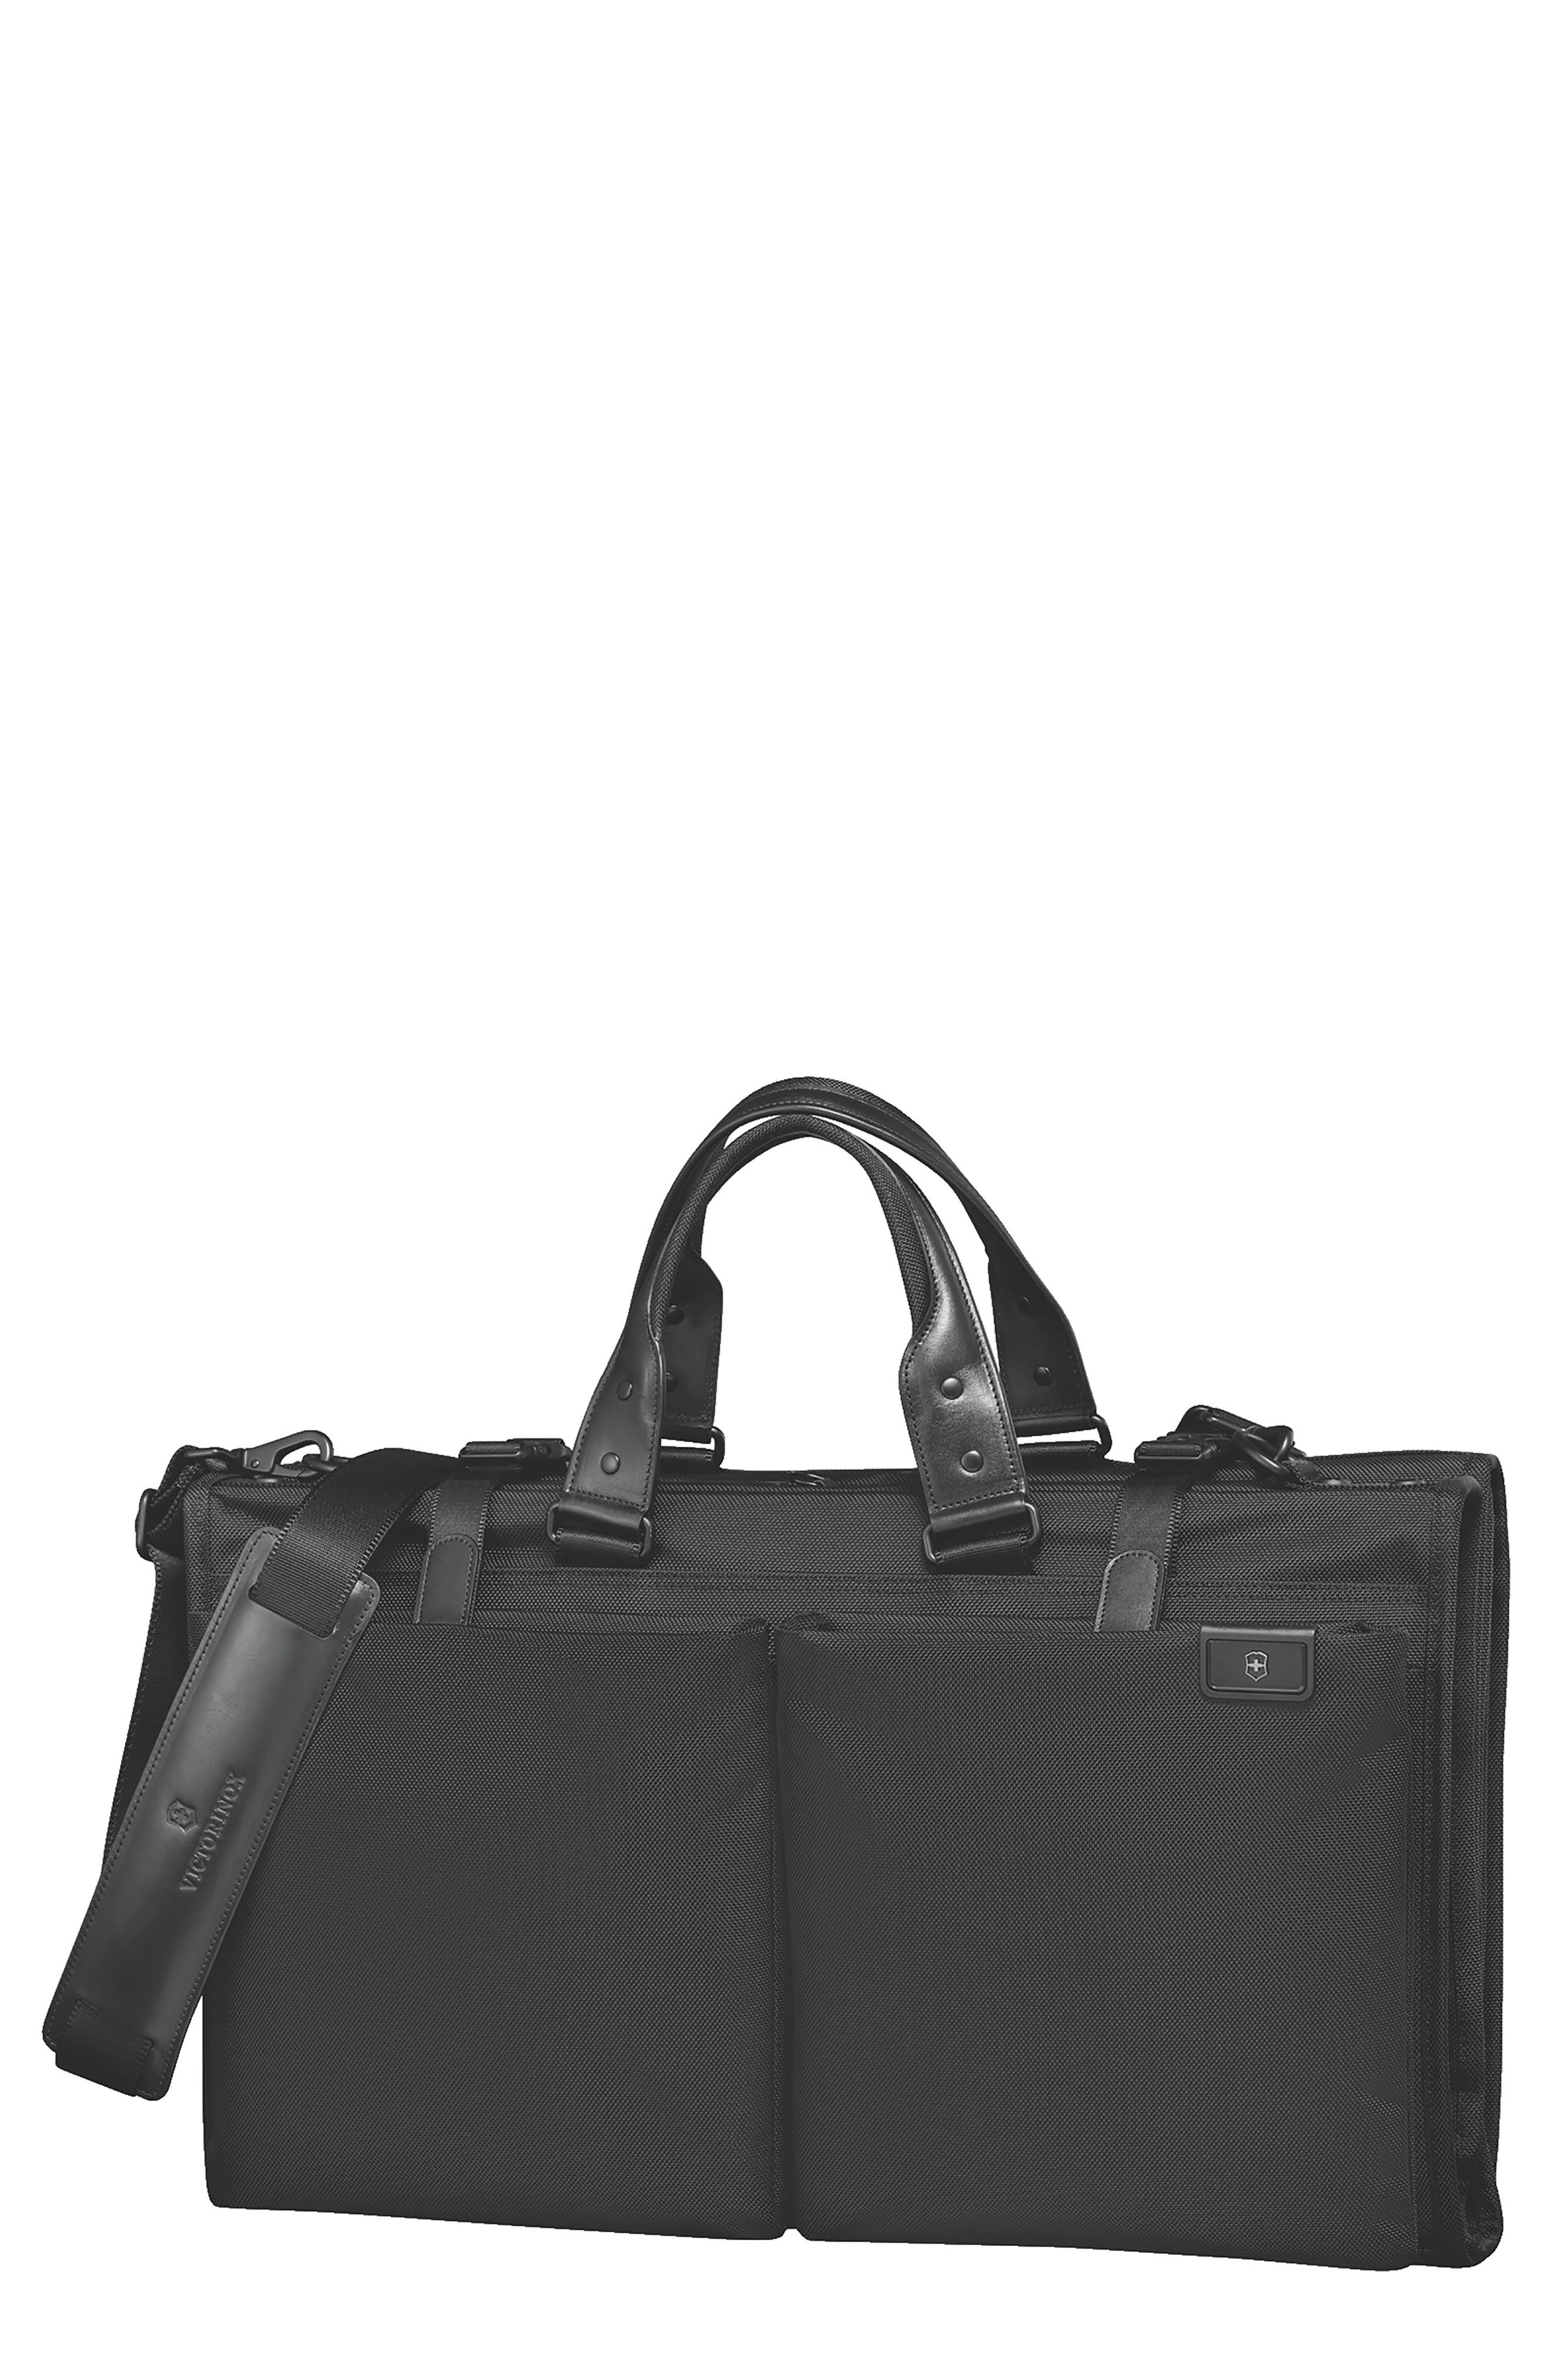 VICTORINOX SWISS ARMY<SUP>®</SUP>, Lexicon 2.0 Trifold Garment Bag, Main thumbnail 1, color, BLACK